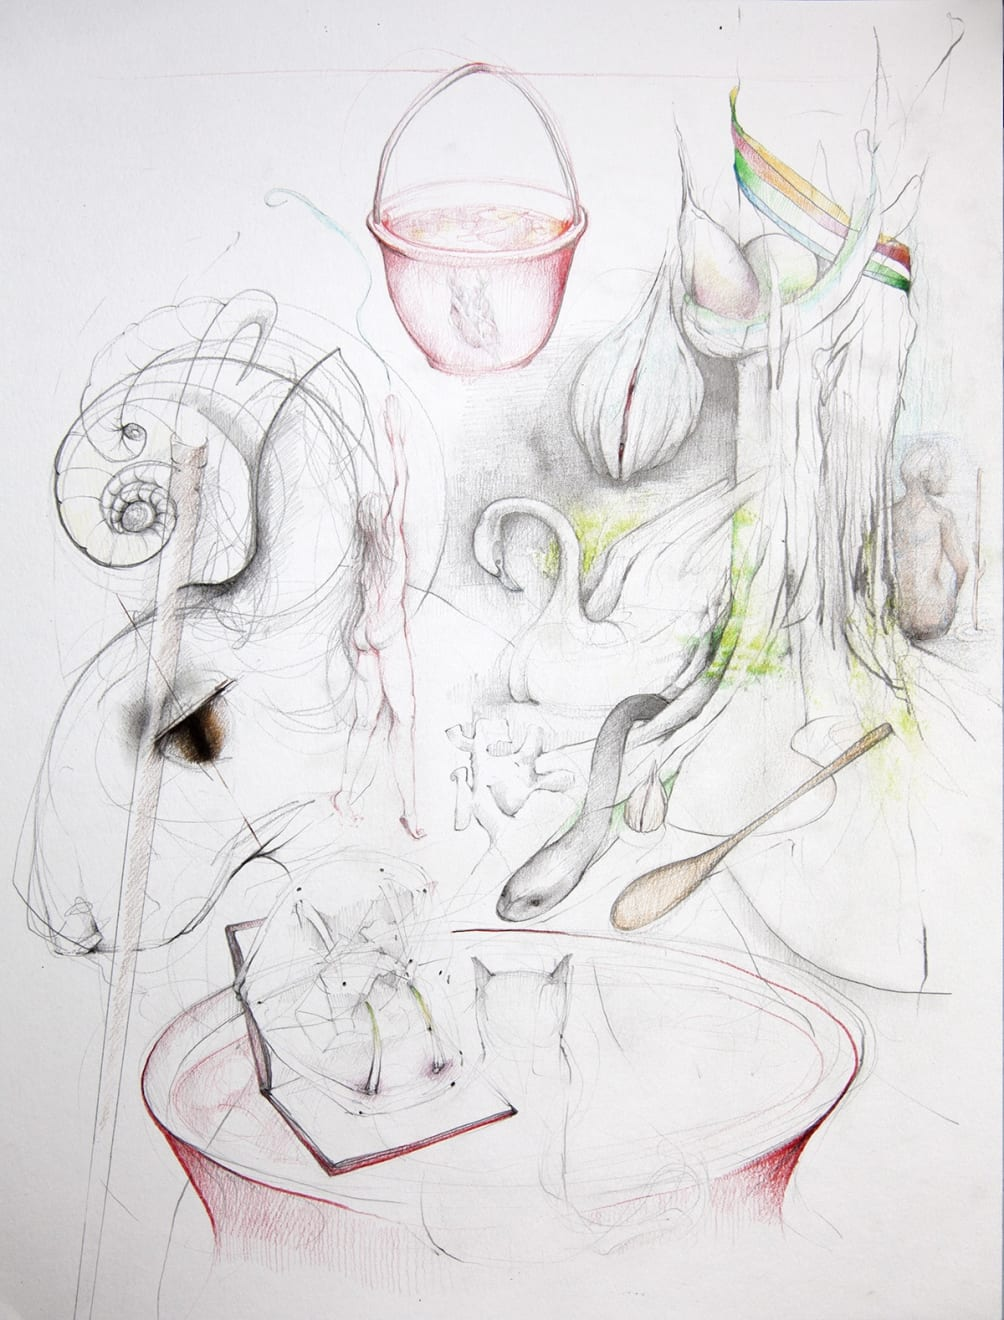 Kirsty Whiten, Intuiative Drawing (Chantal), 2019 Pencil and watercolour on paper, 42 x 56 cm